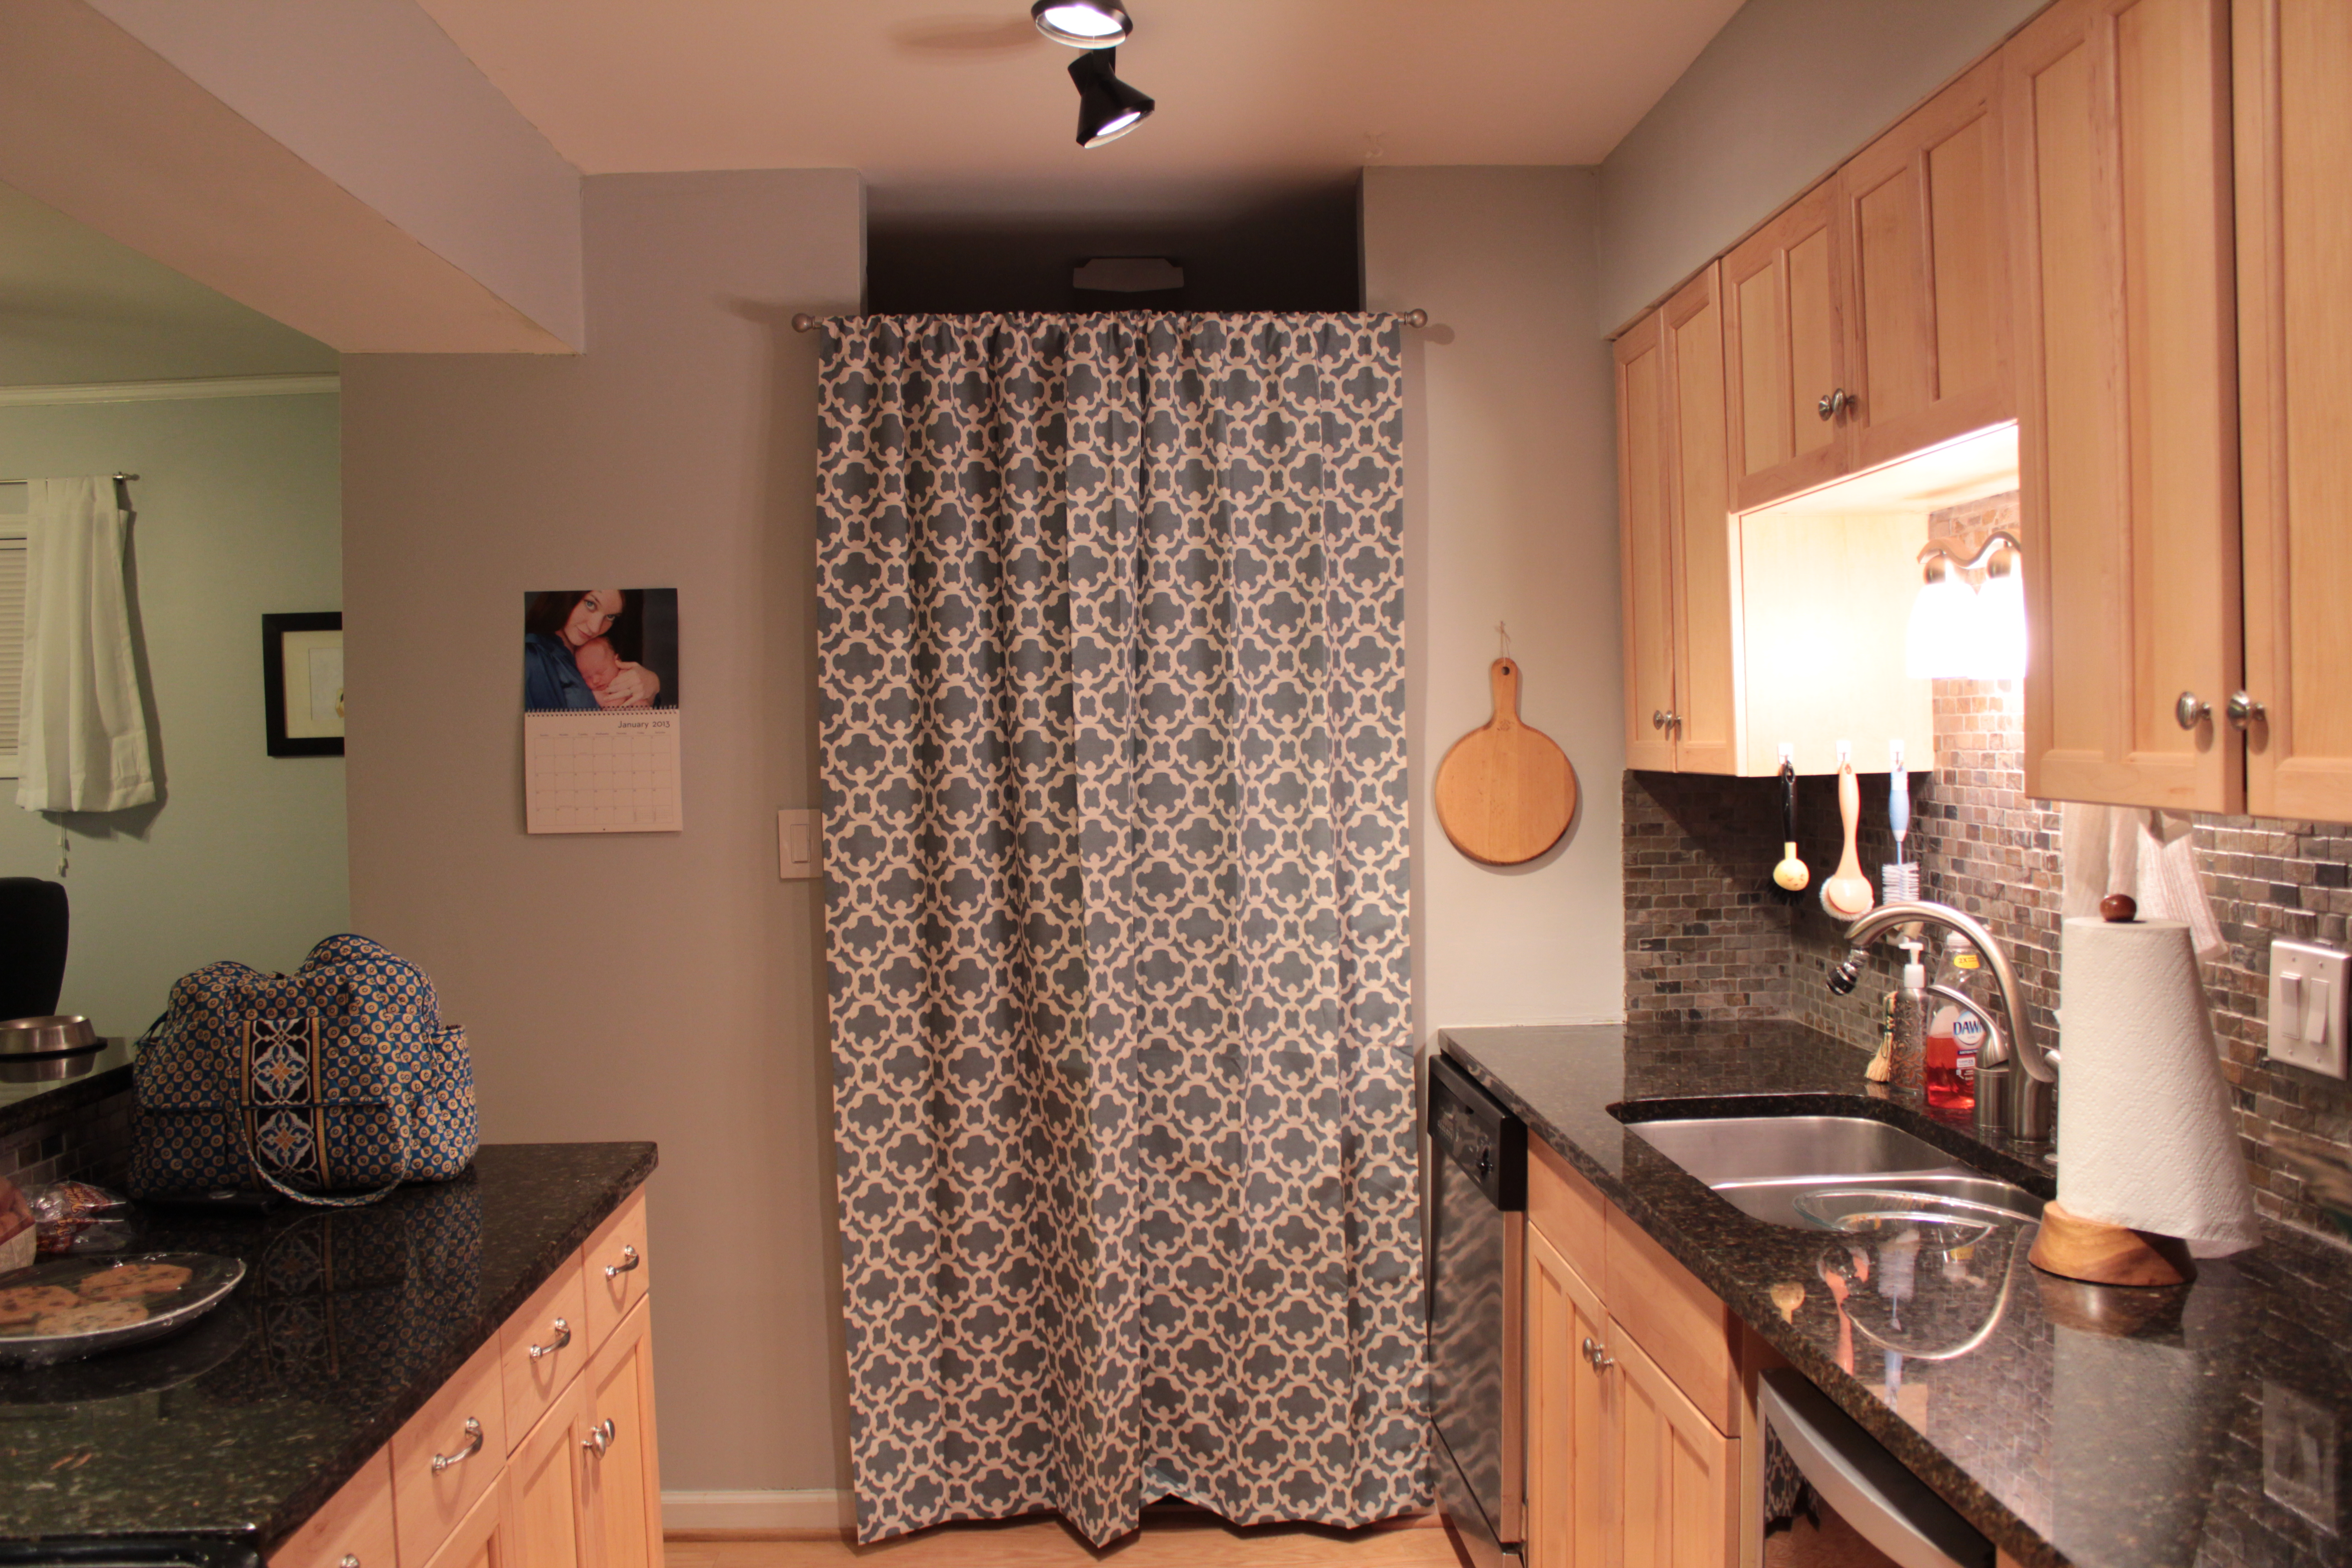 Laundry room curtains - Curtain For Laundry Room Door Productive 3 Day Weekend This Is Sesame